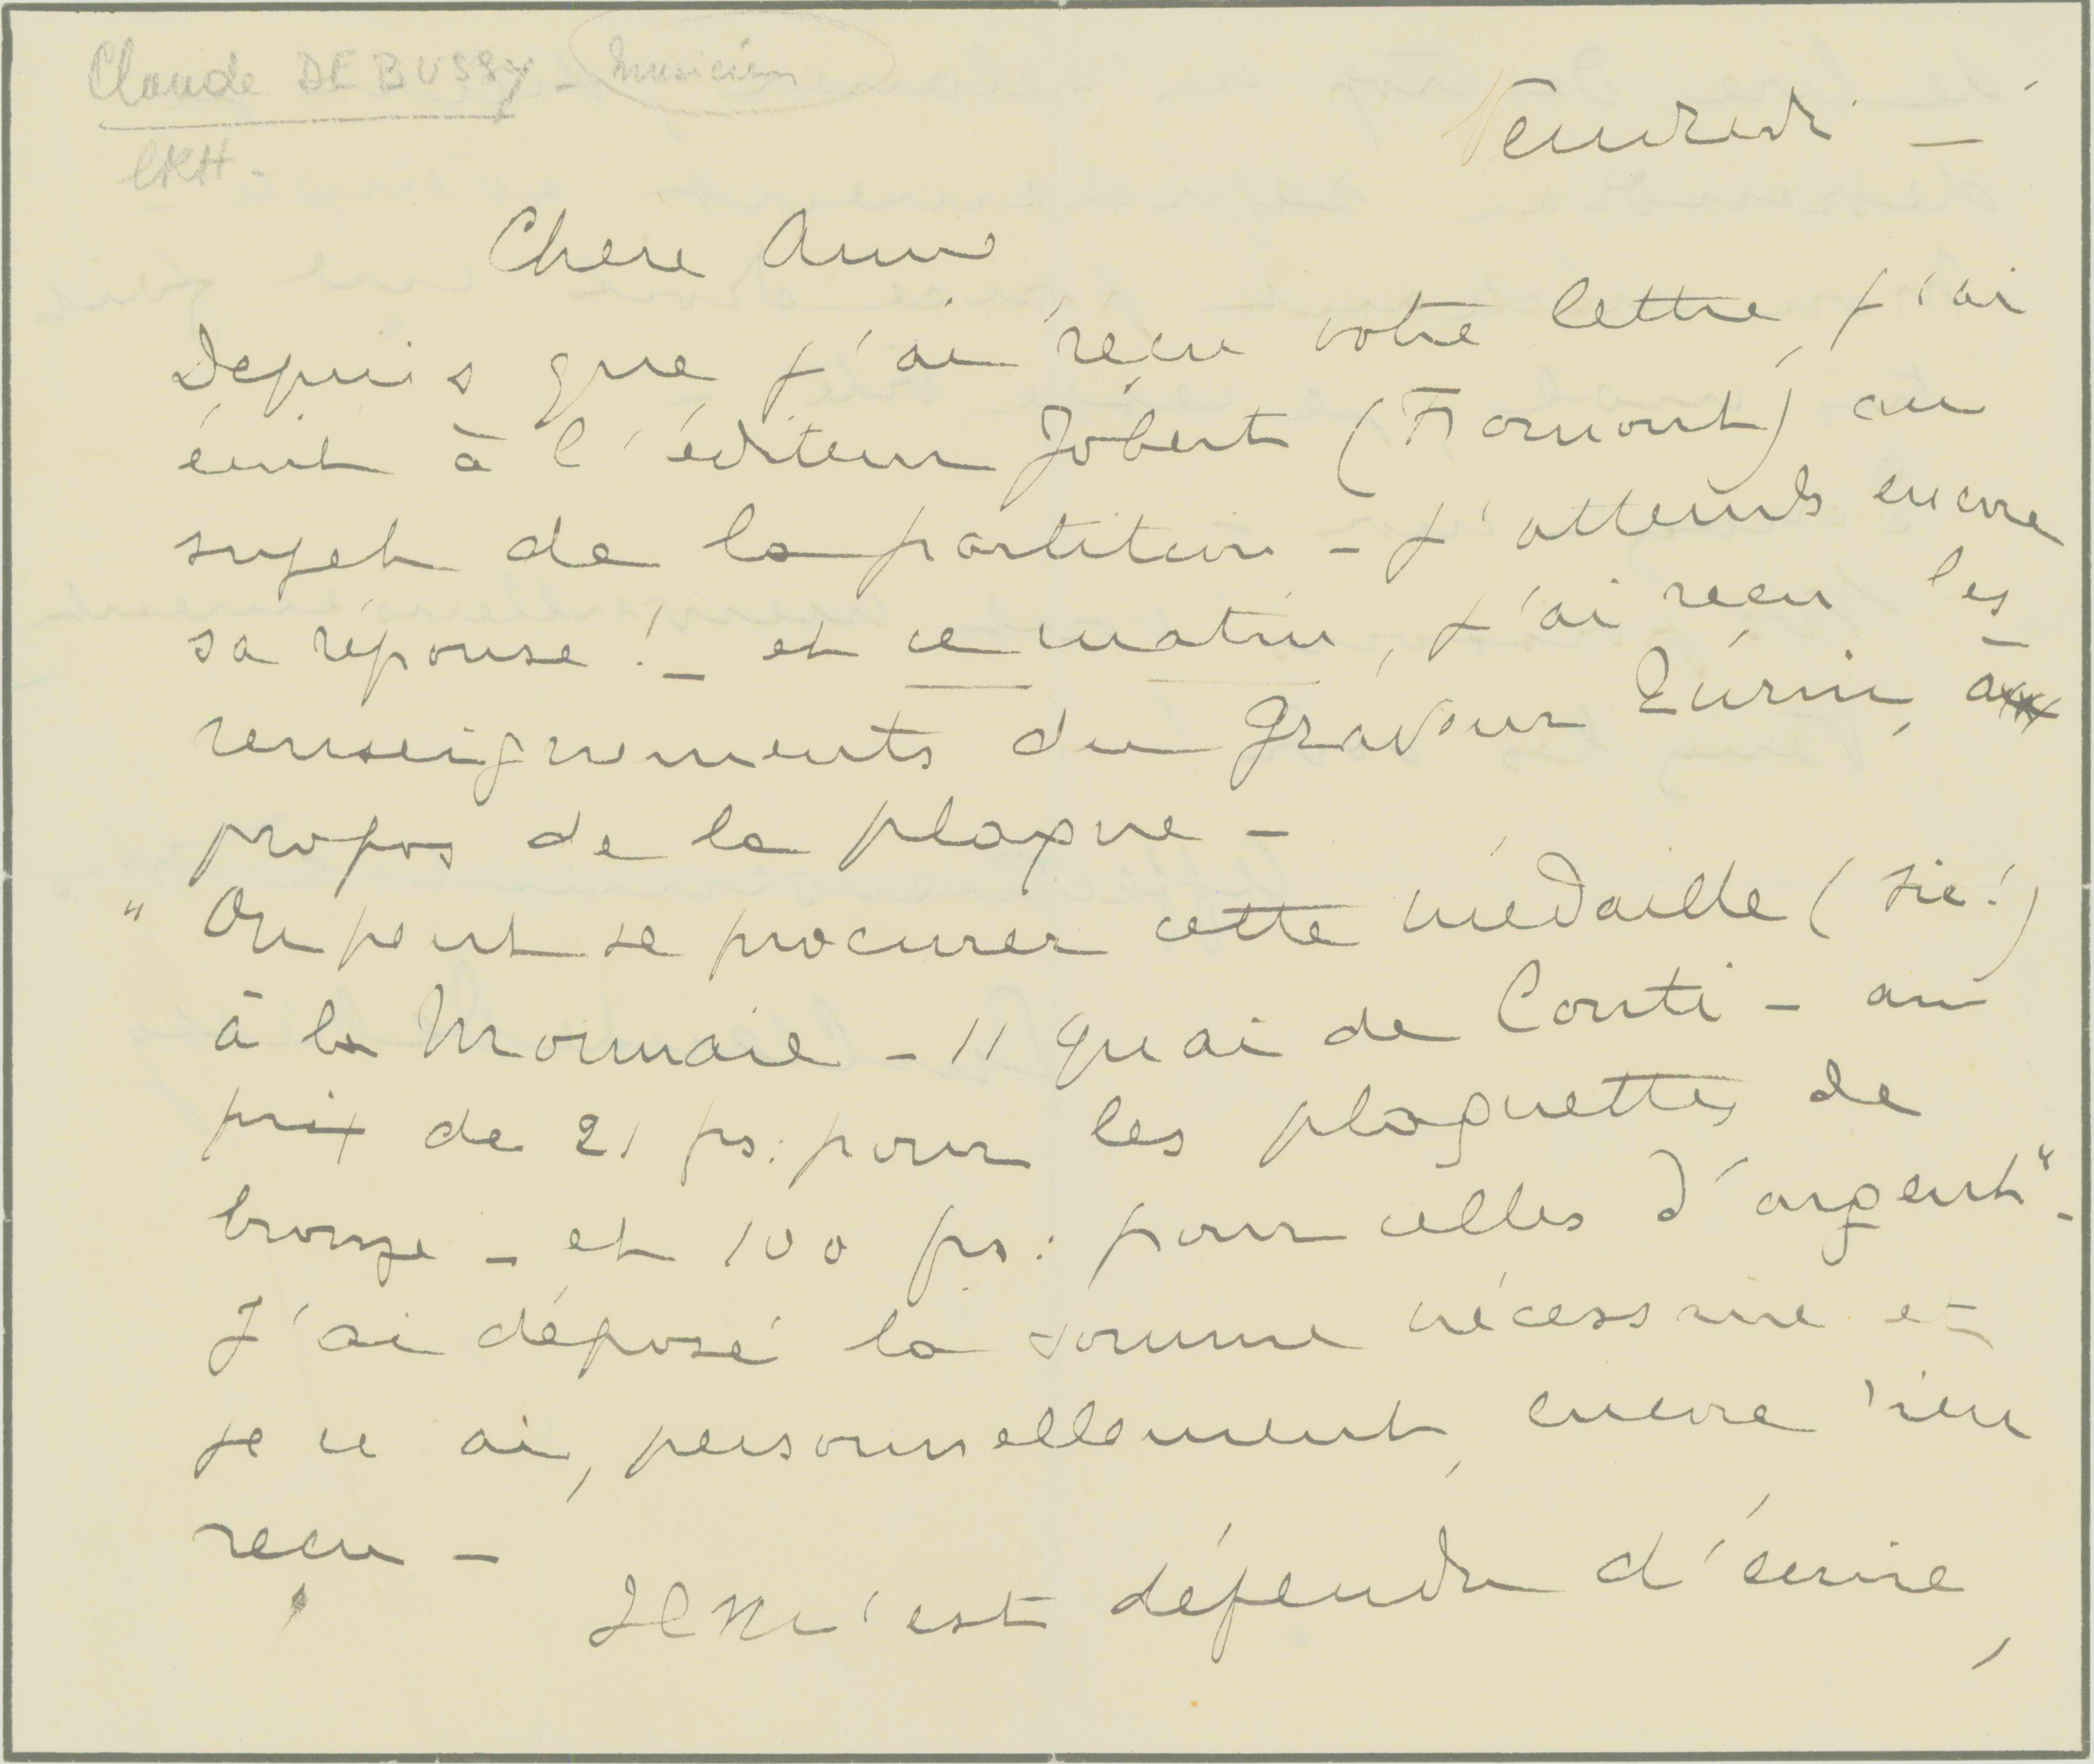 Debussy, Claude - Letter Written For Him During Illness - (6844)